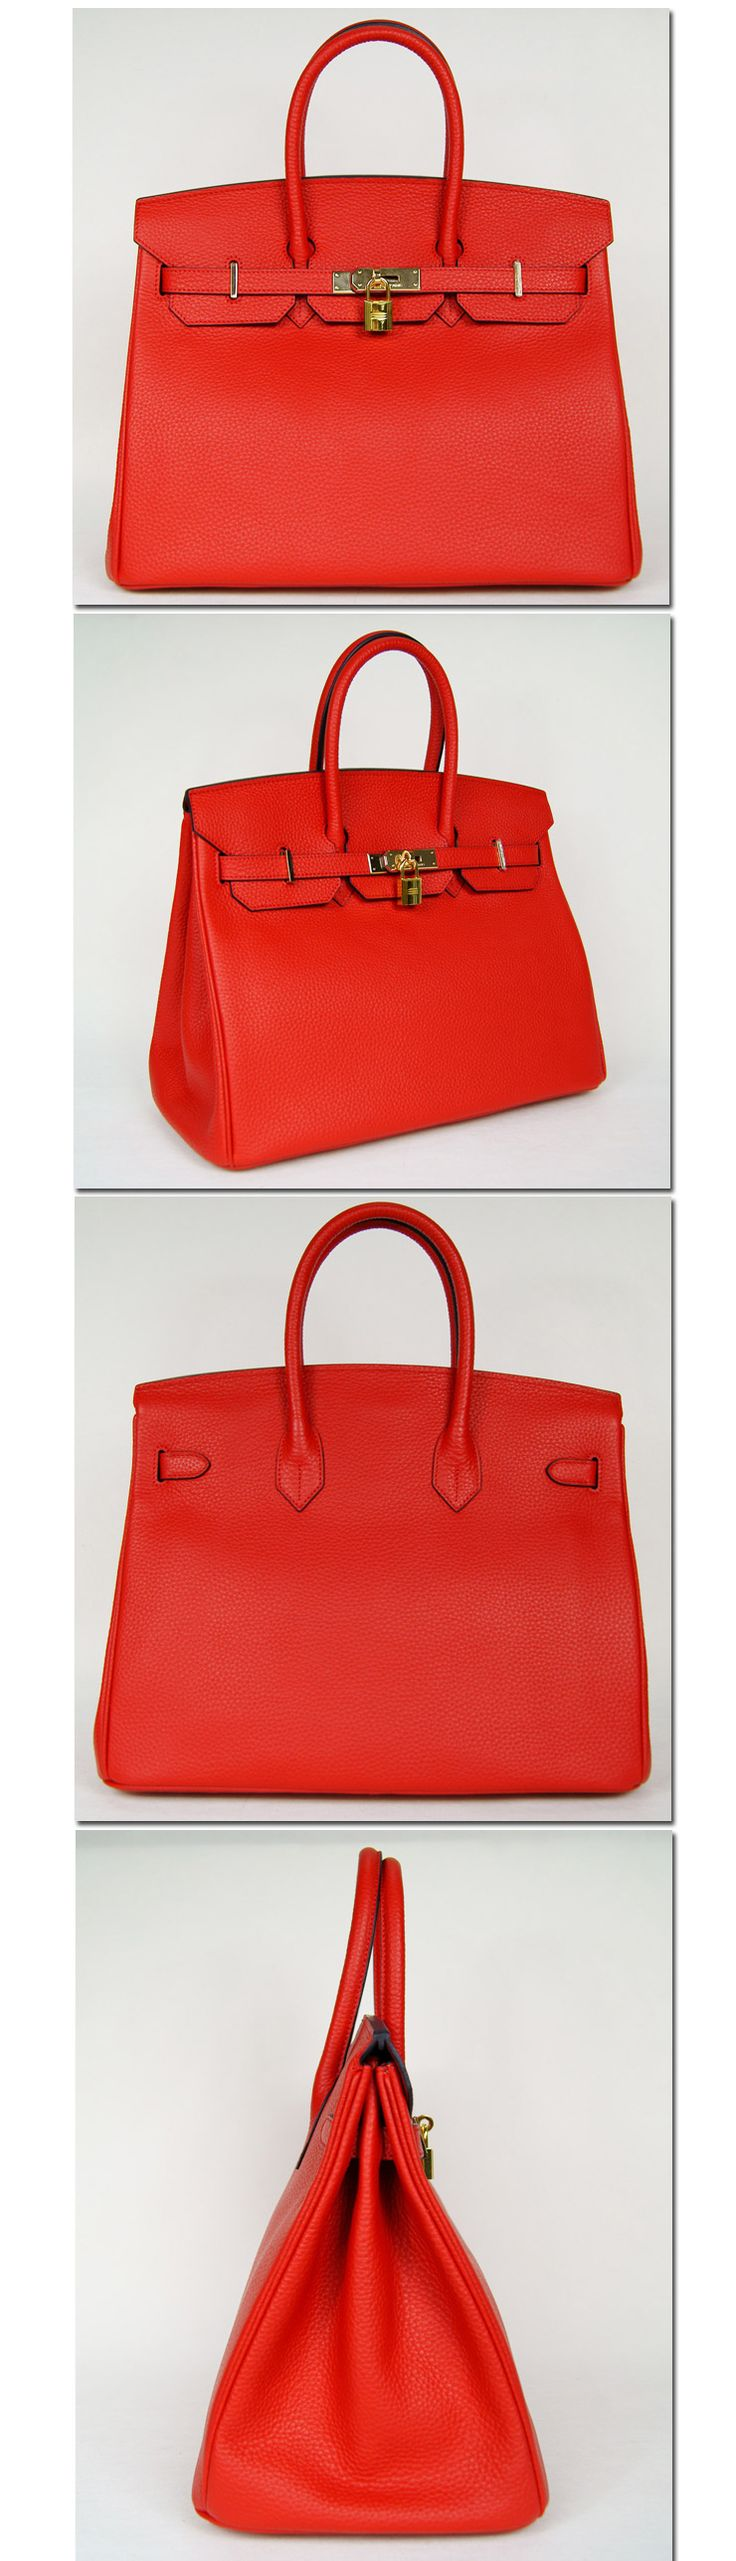 Hermes Birkin Bag- the most beautiful, most expensive bag I will ...